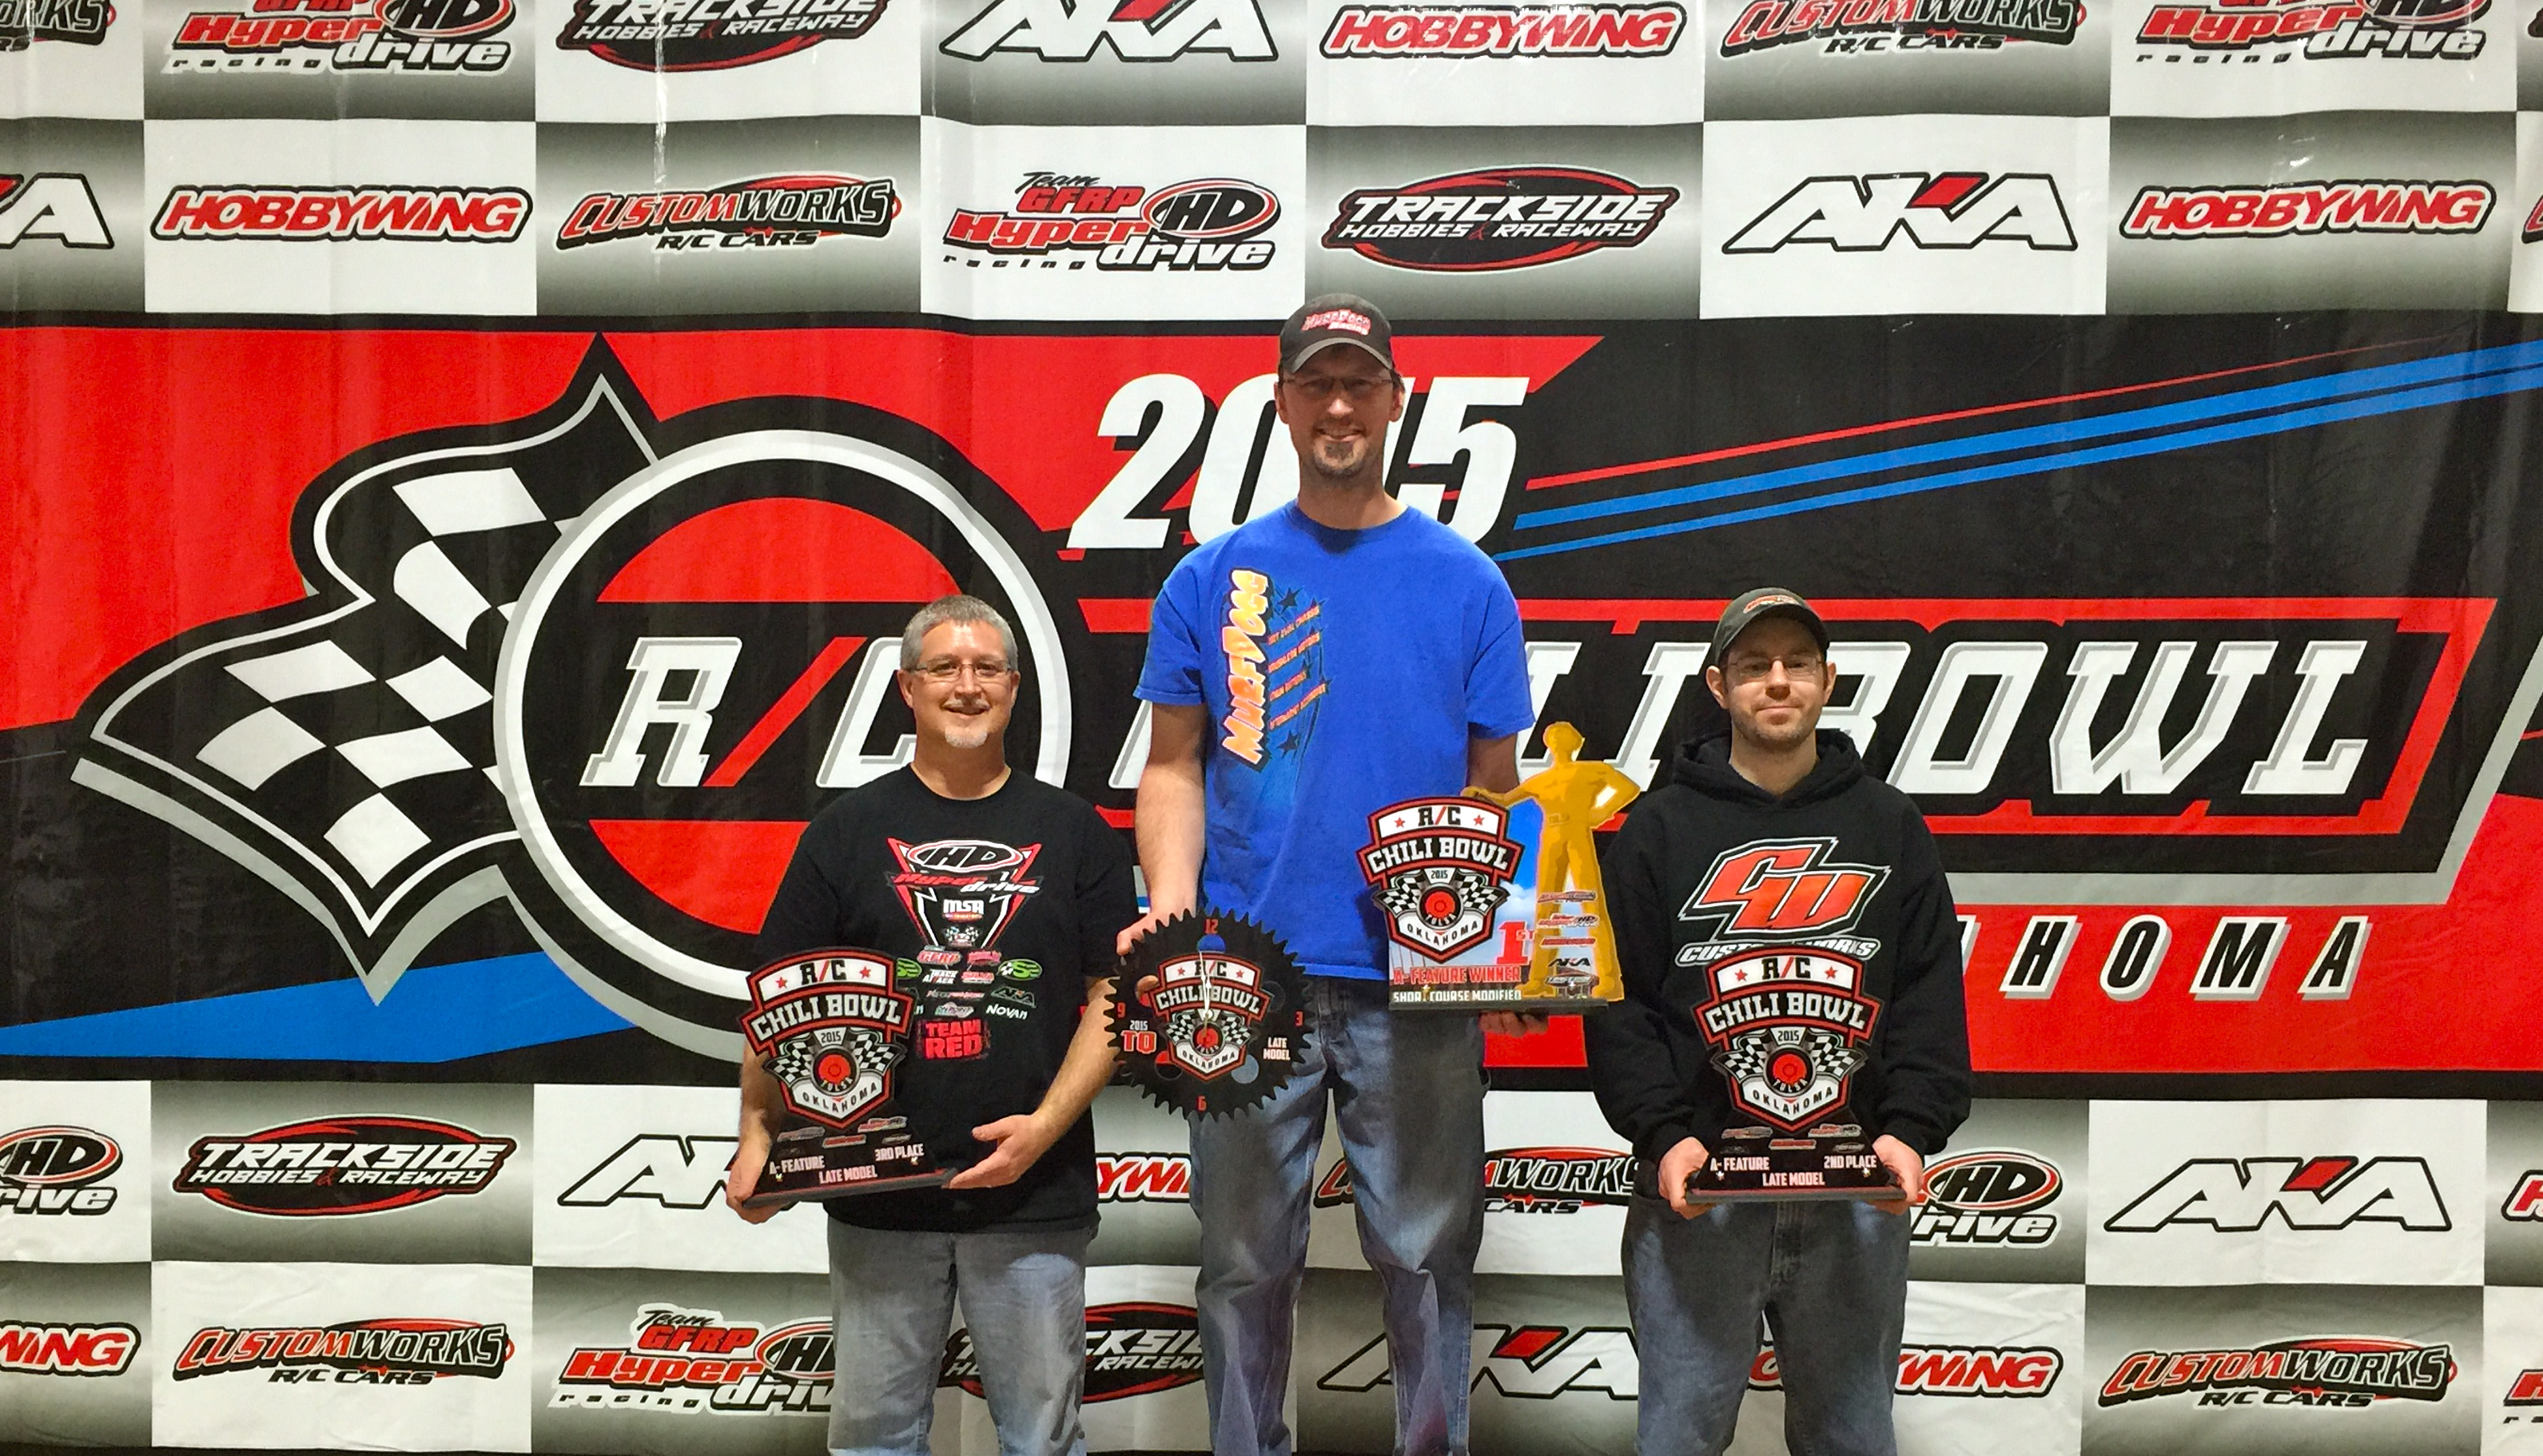 MODIFIED LATE MODEL PODIUM